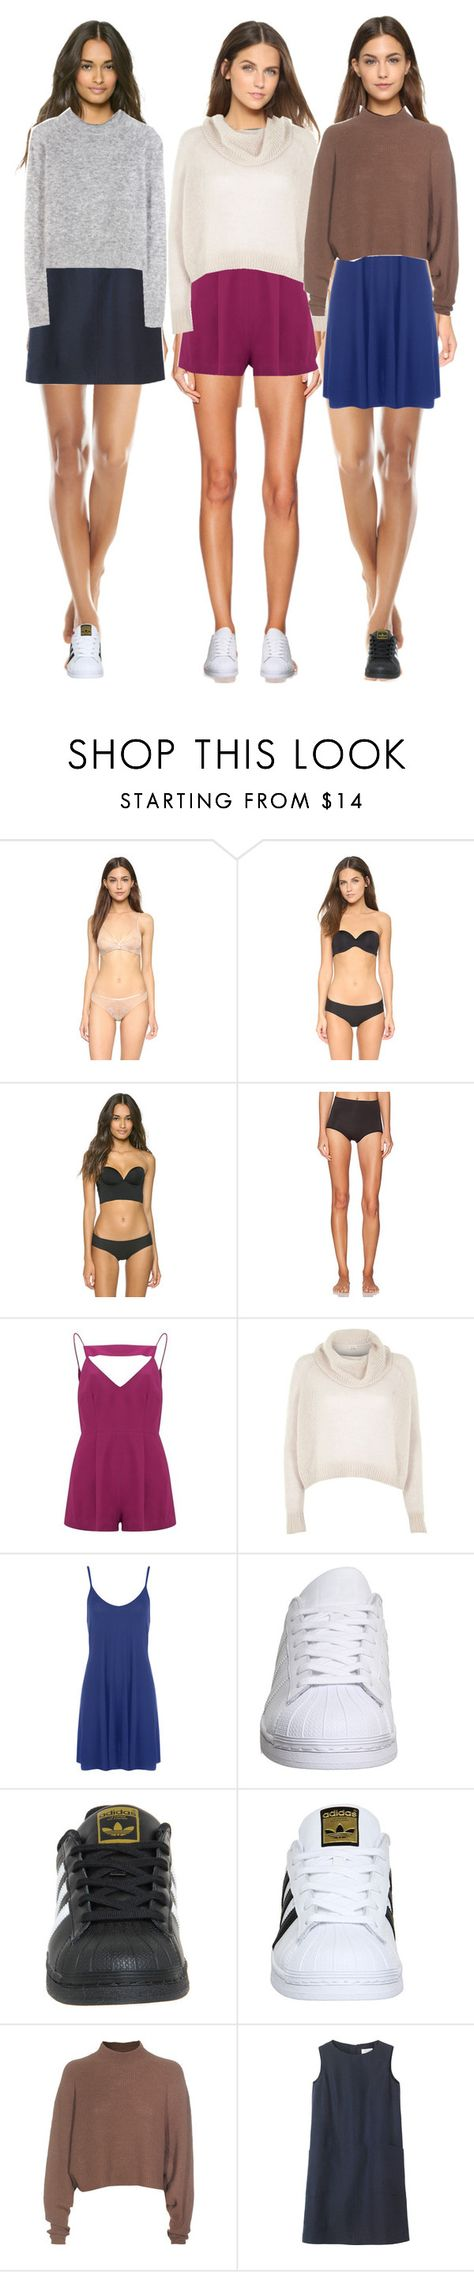 """""""Untitled #431"""" by makeupbylibby ❤ liked on Polyvore featuring Natori, Cosabella, SPANX, Finders Keepers, River Island, WearAll, adidas, Acne Studios, Toast and Wood Wood"""